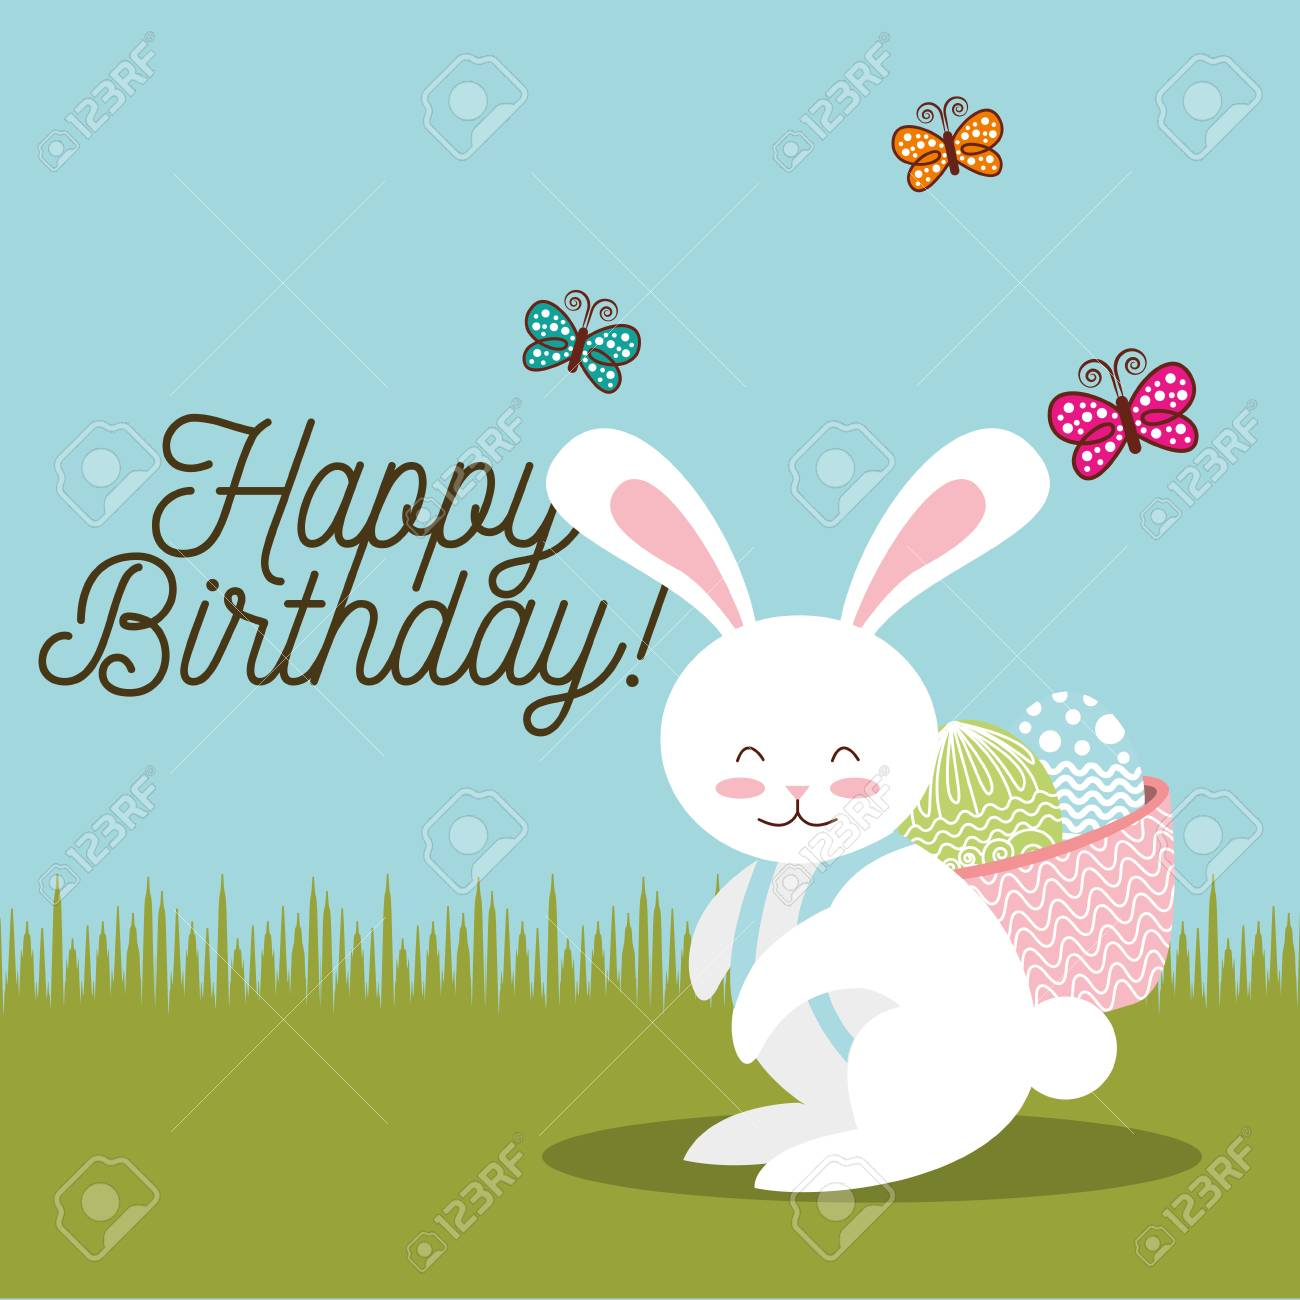 Happy Birthday Card Sweet Bunny With Basket Easter Eggs In Back Vector Illustration Stock